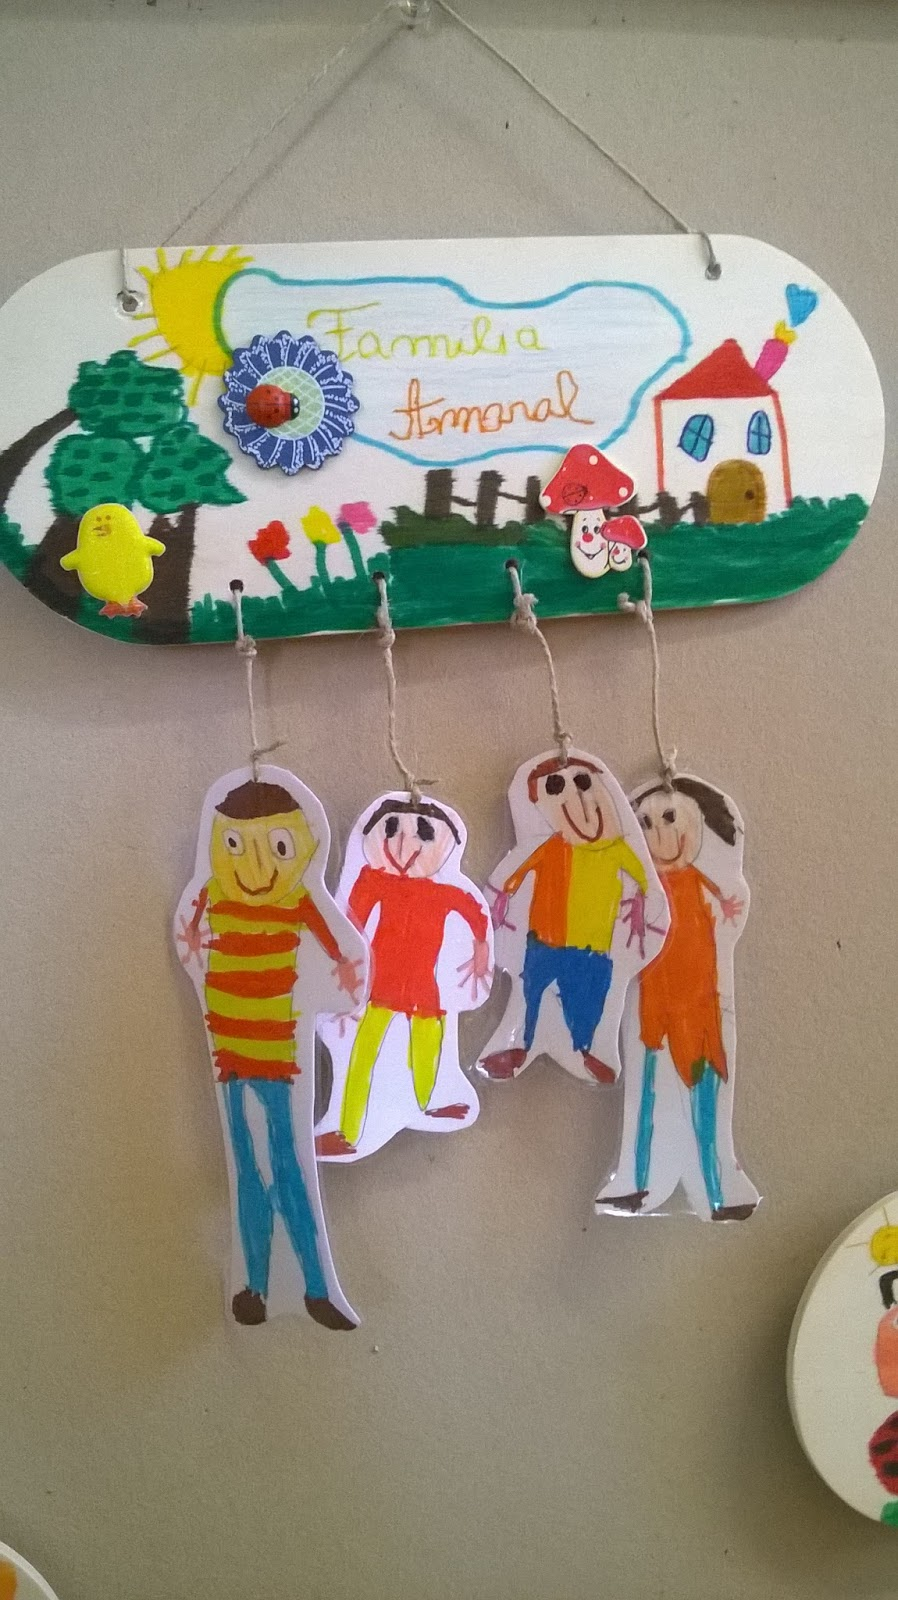 Hora de brincar e de aprender for Family arts and crafts